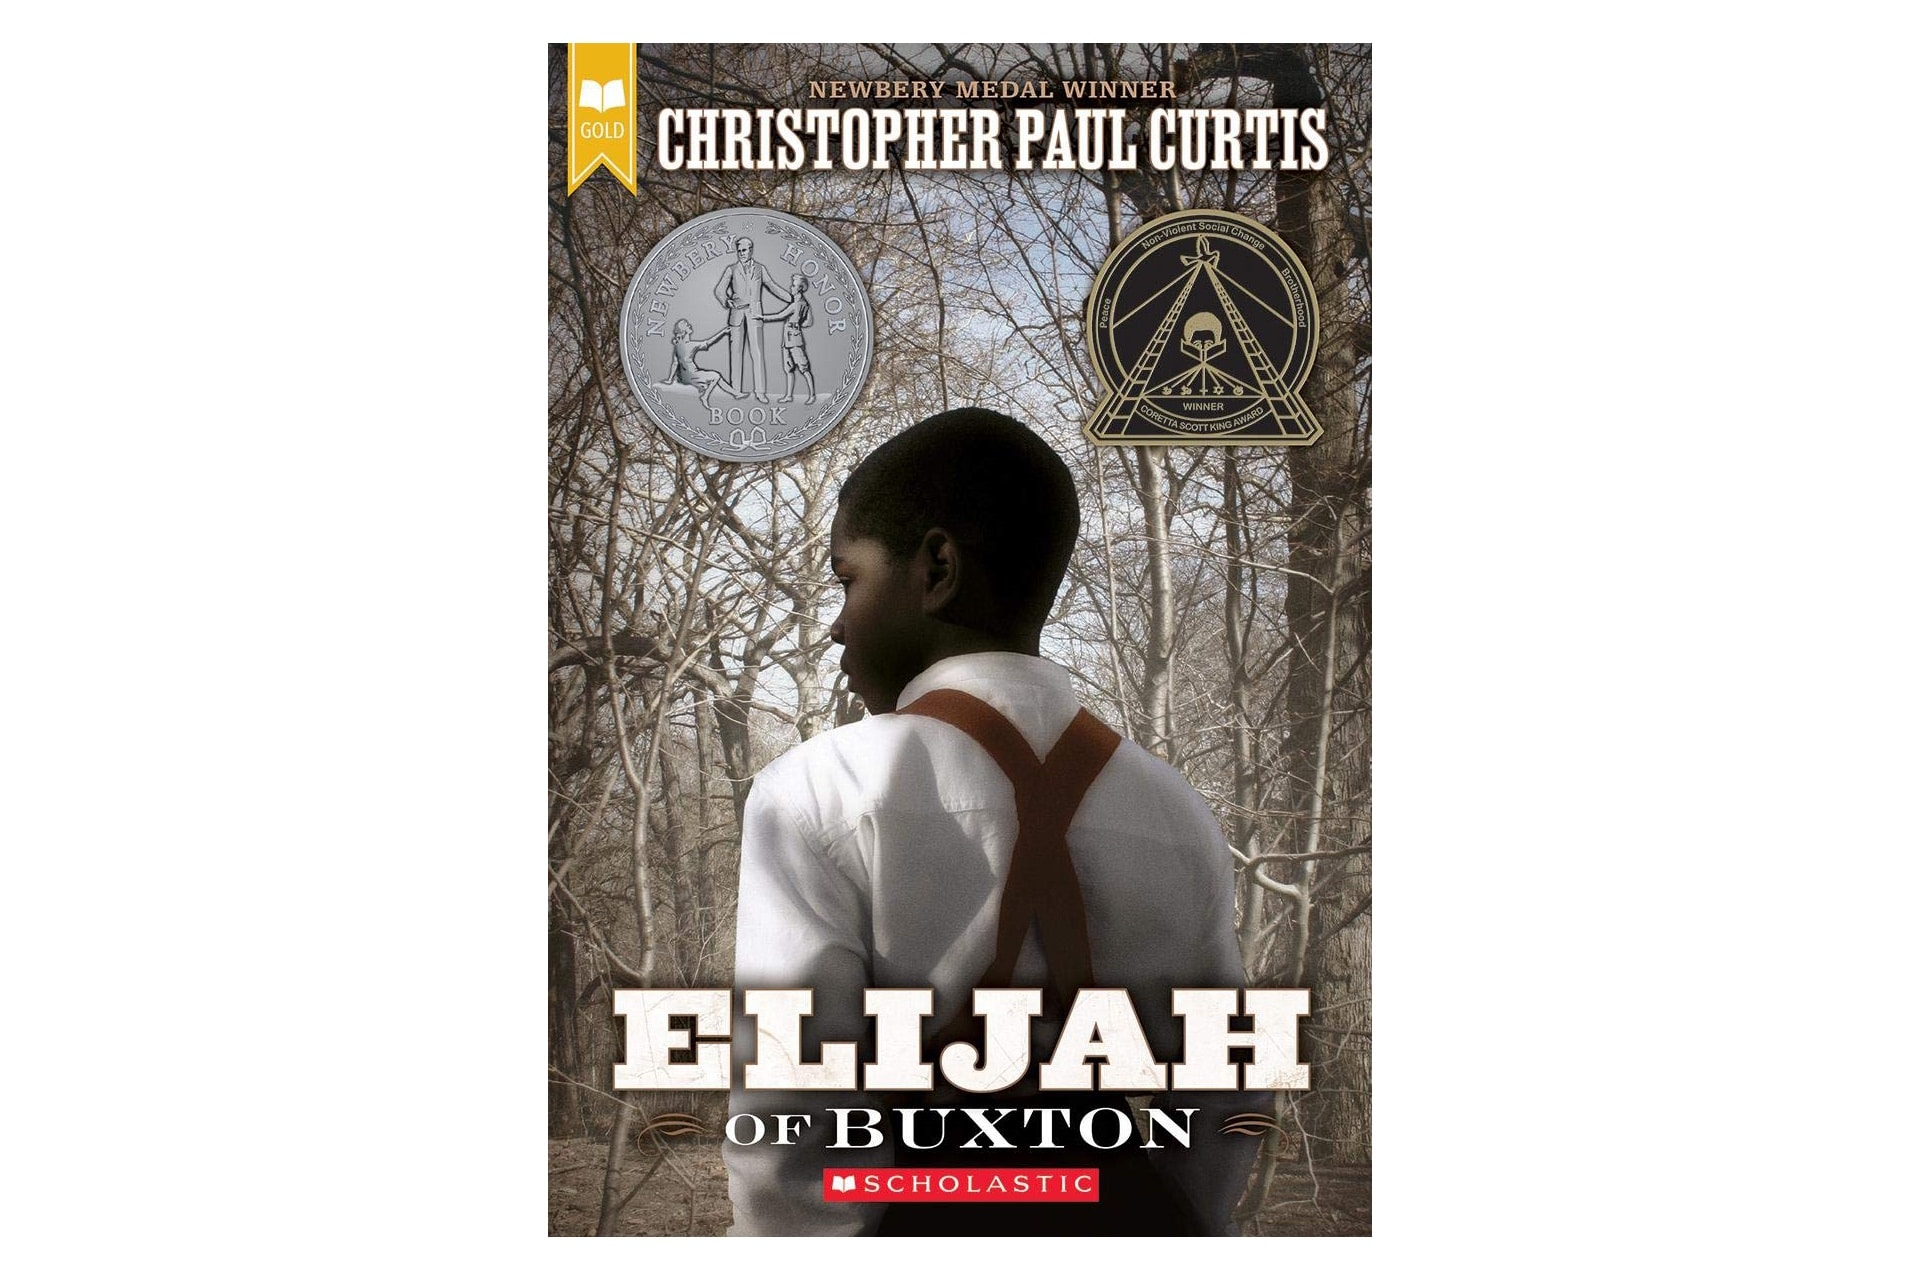 Book cover of a Black boy in the woods, the title says Elijah of Buxton